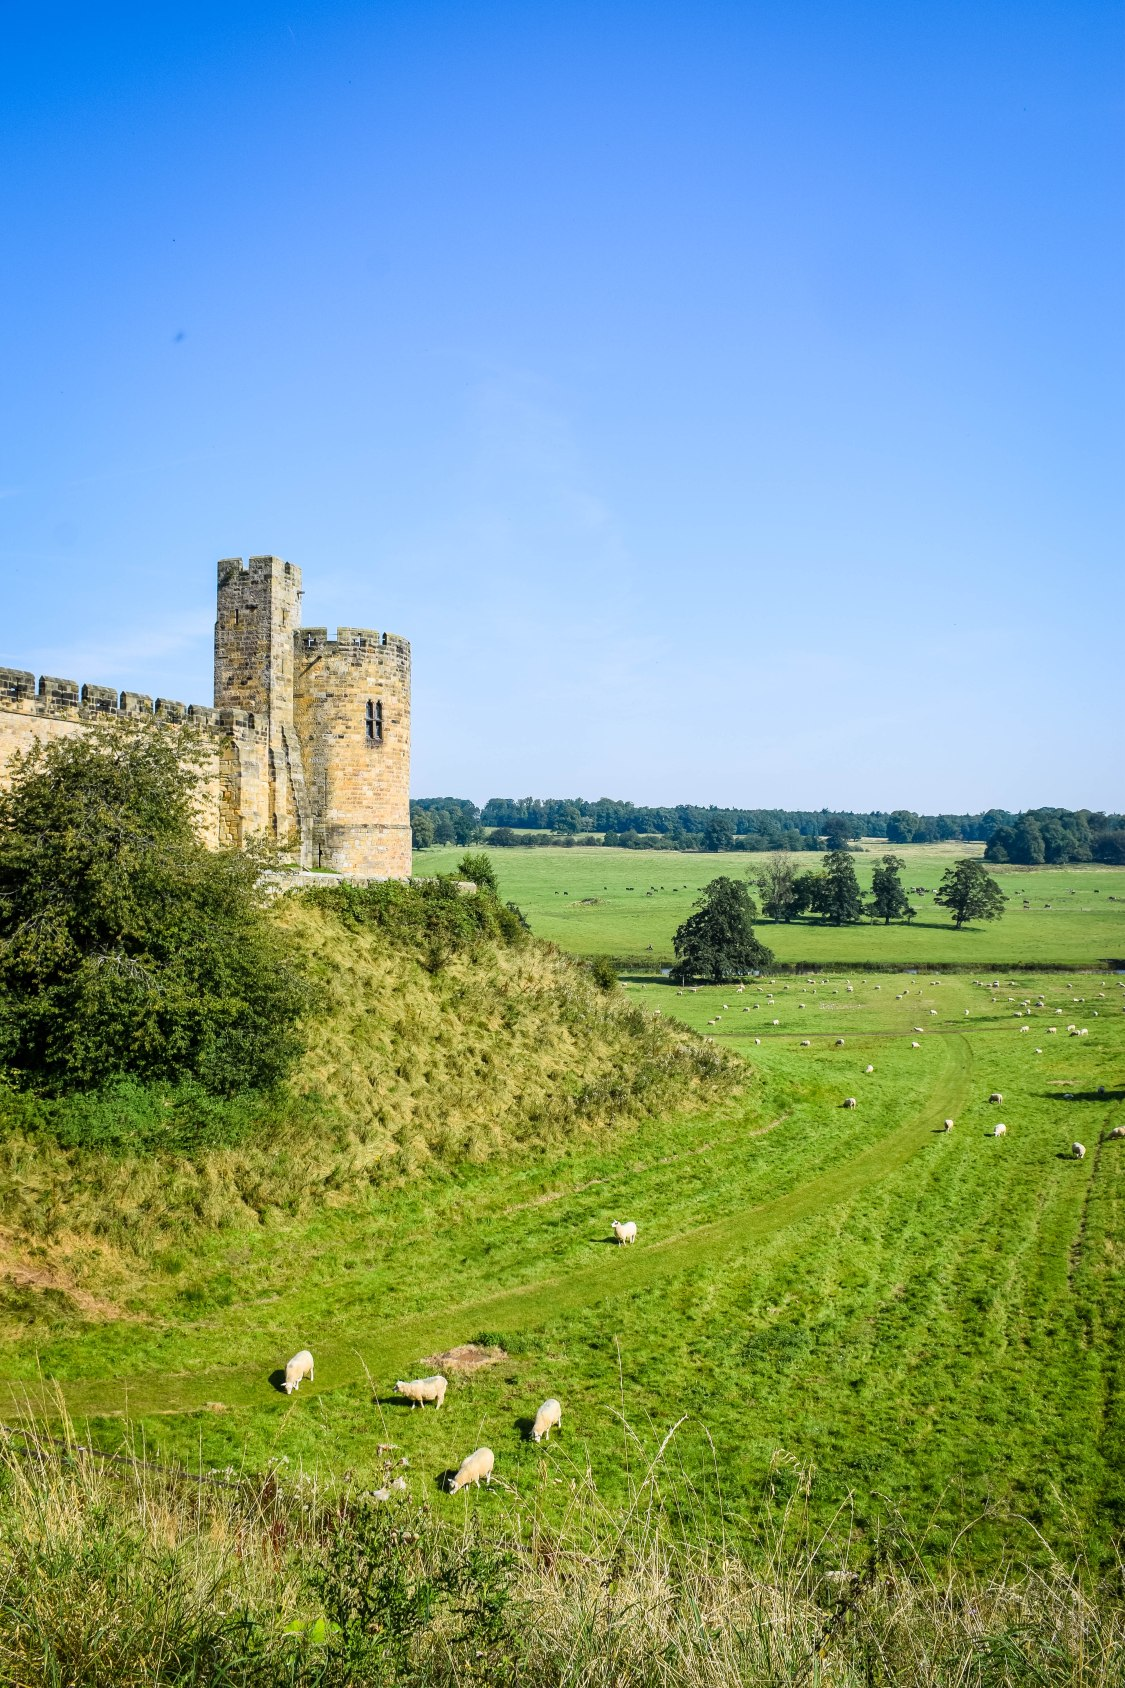 The view across the field to Alnwick Castle